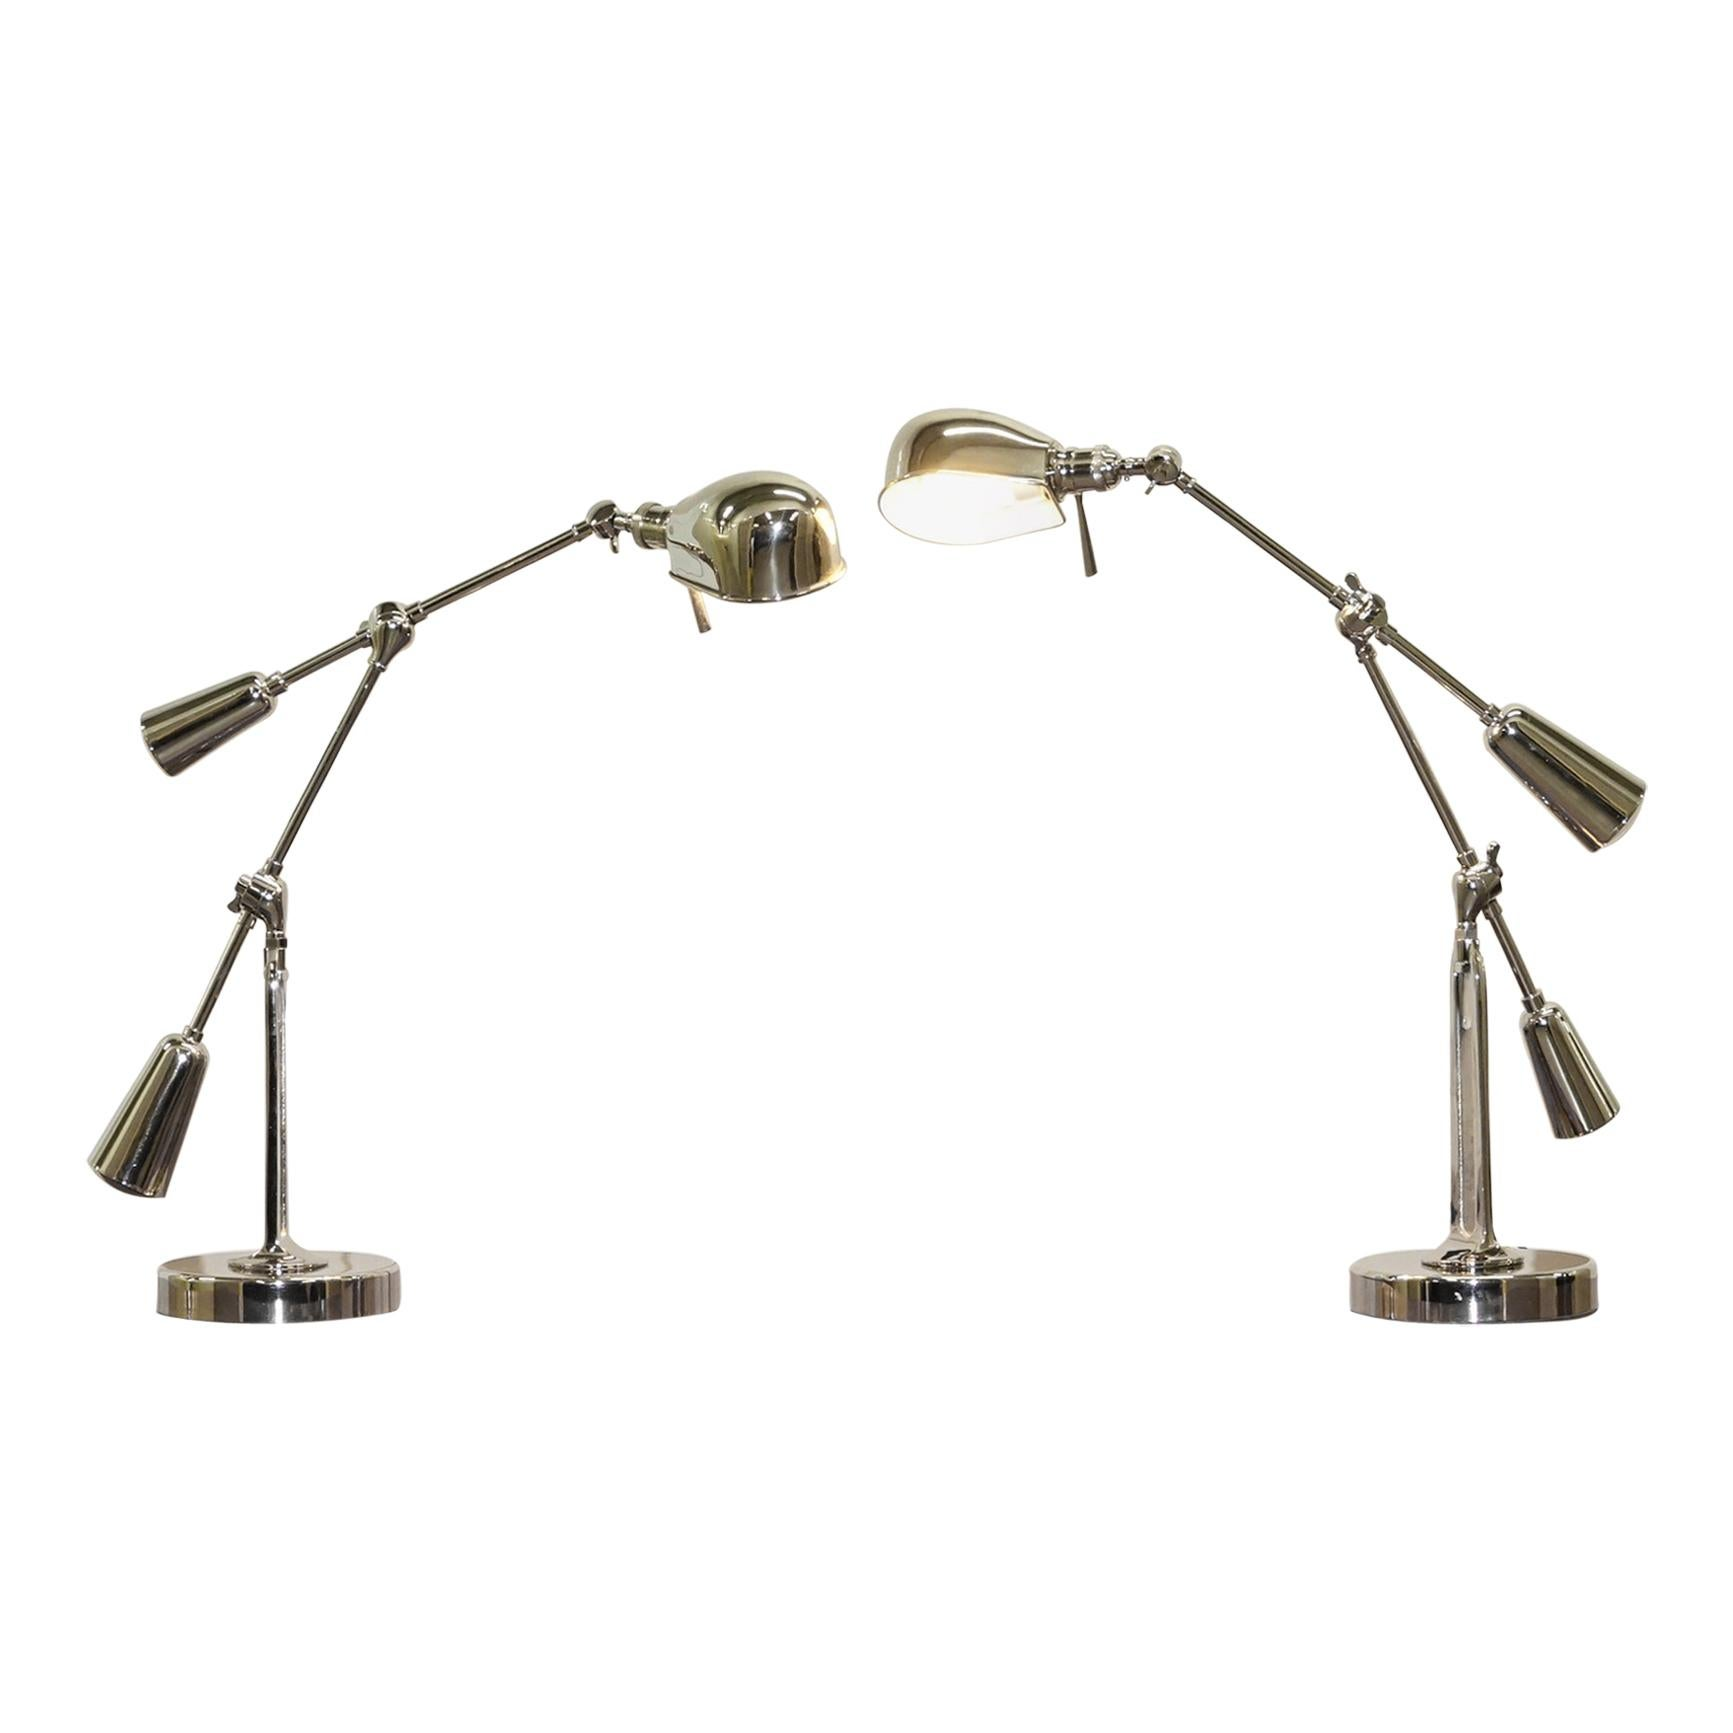 Pair of Large Ralph Lauren Boom Arm 1967 Articulated Table Lamps Tilt Functions